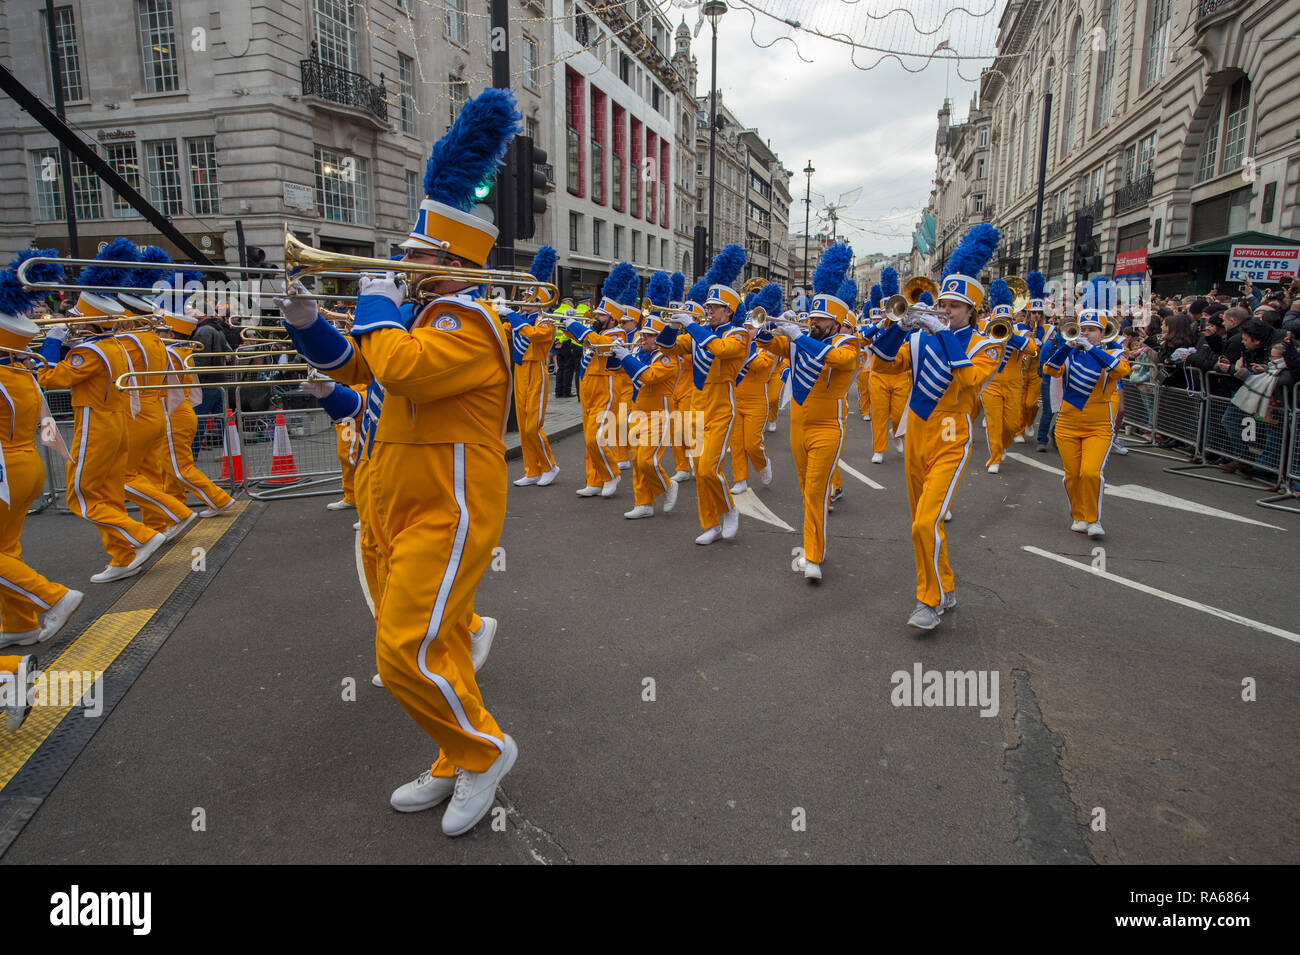 Westminster, London, UK. 1 January 2019. The annual London New Years Day Parade takes place on a route from Piccadilly to Parliament Square, watched by thousands. This years theme is London Welcomes The World. Image: Angelo State University Ram Band, Texas, USA. Credit: Malcolm Park/Alamy Live News. - Stock Image